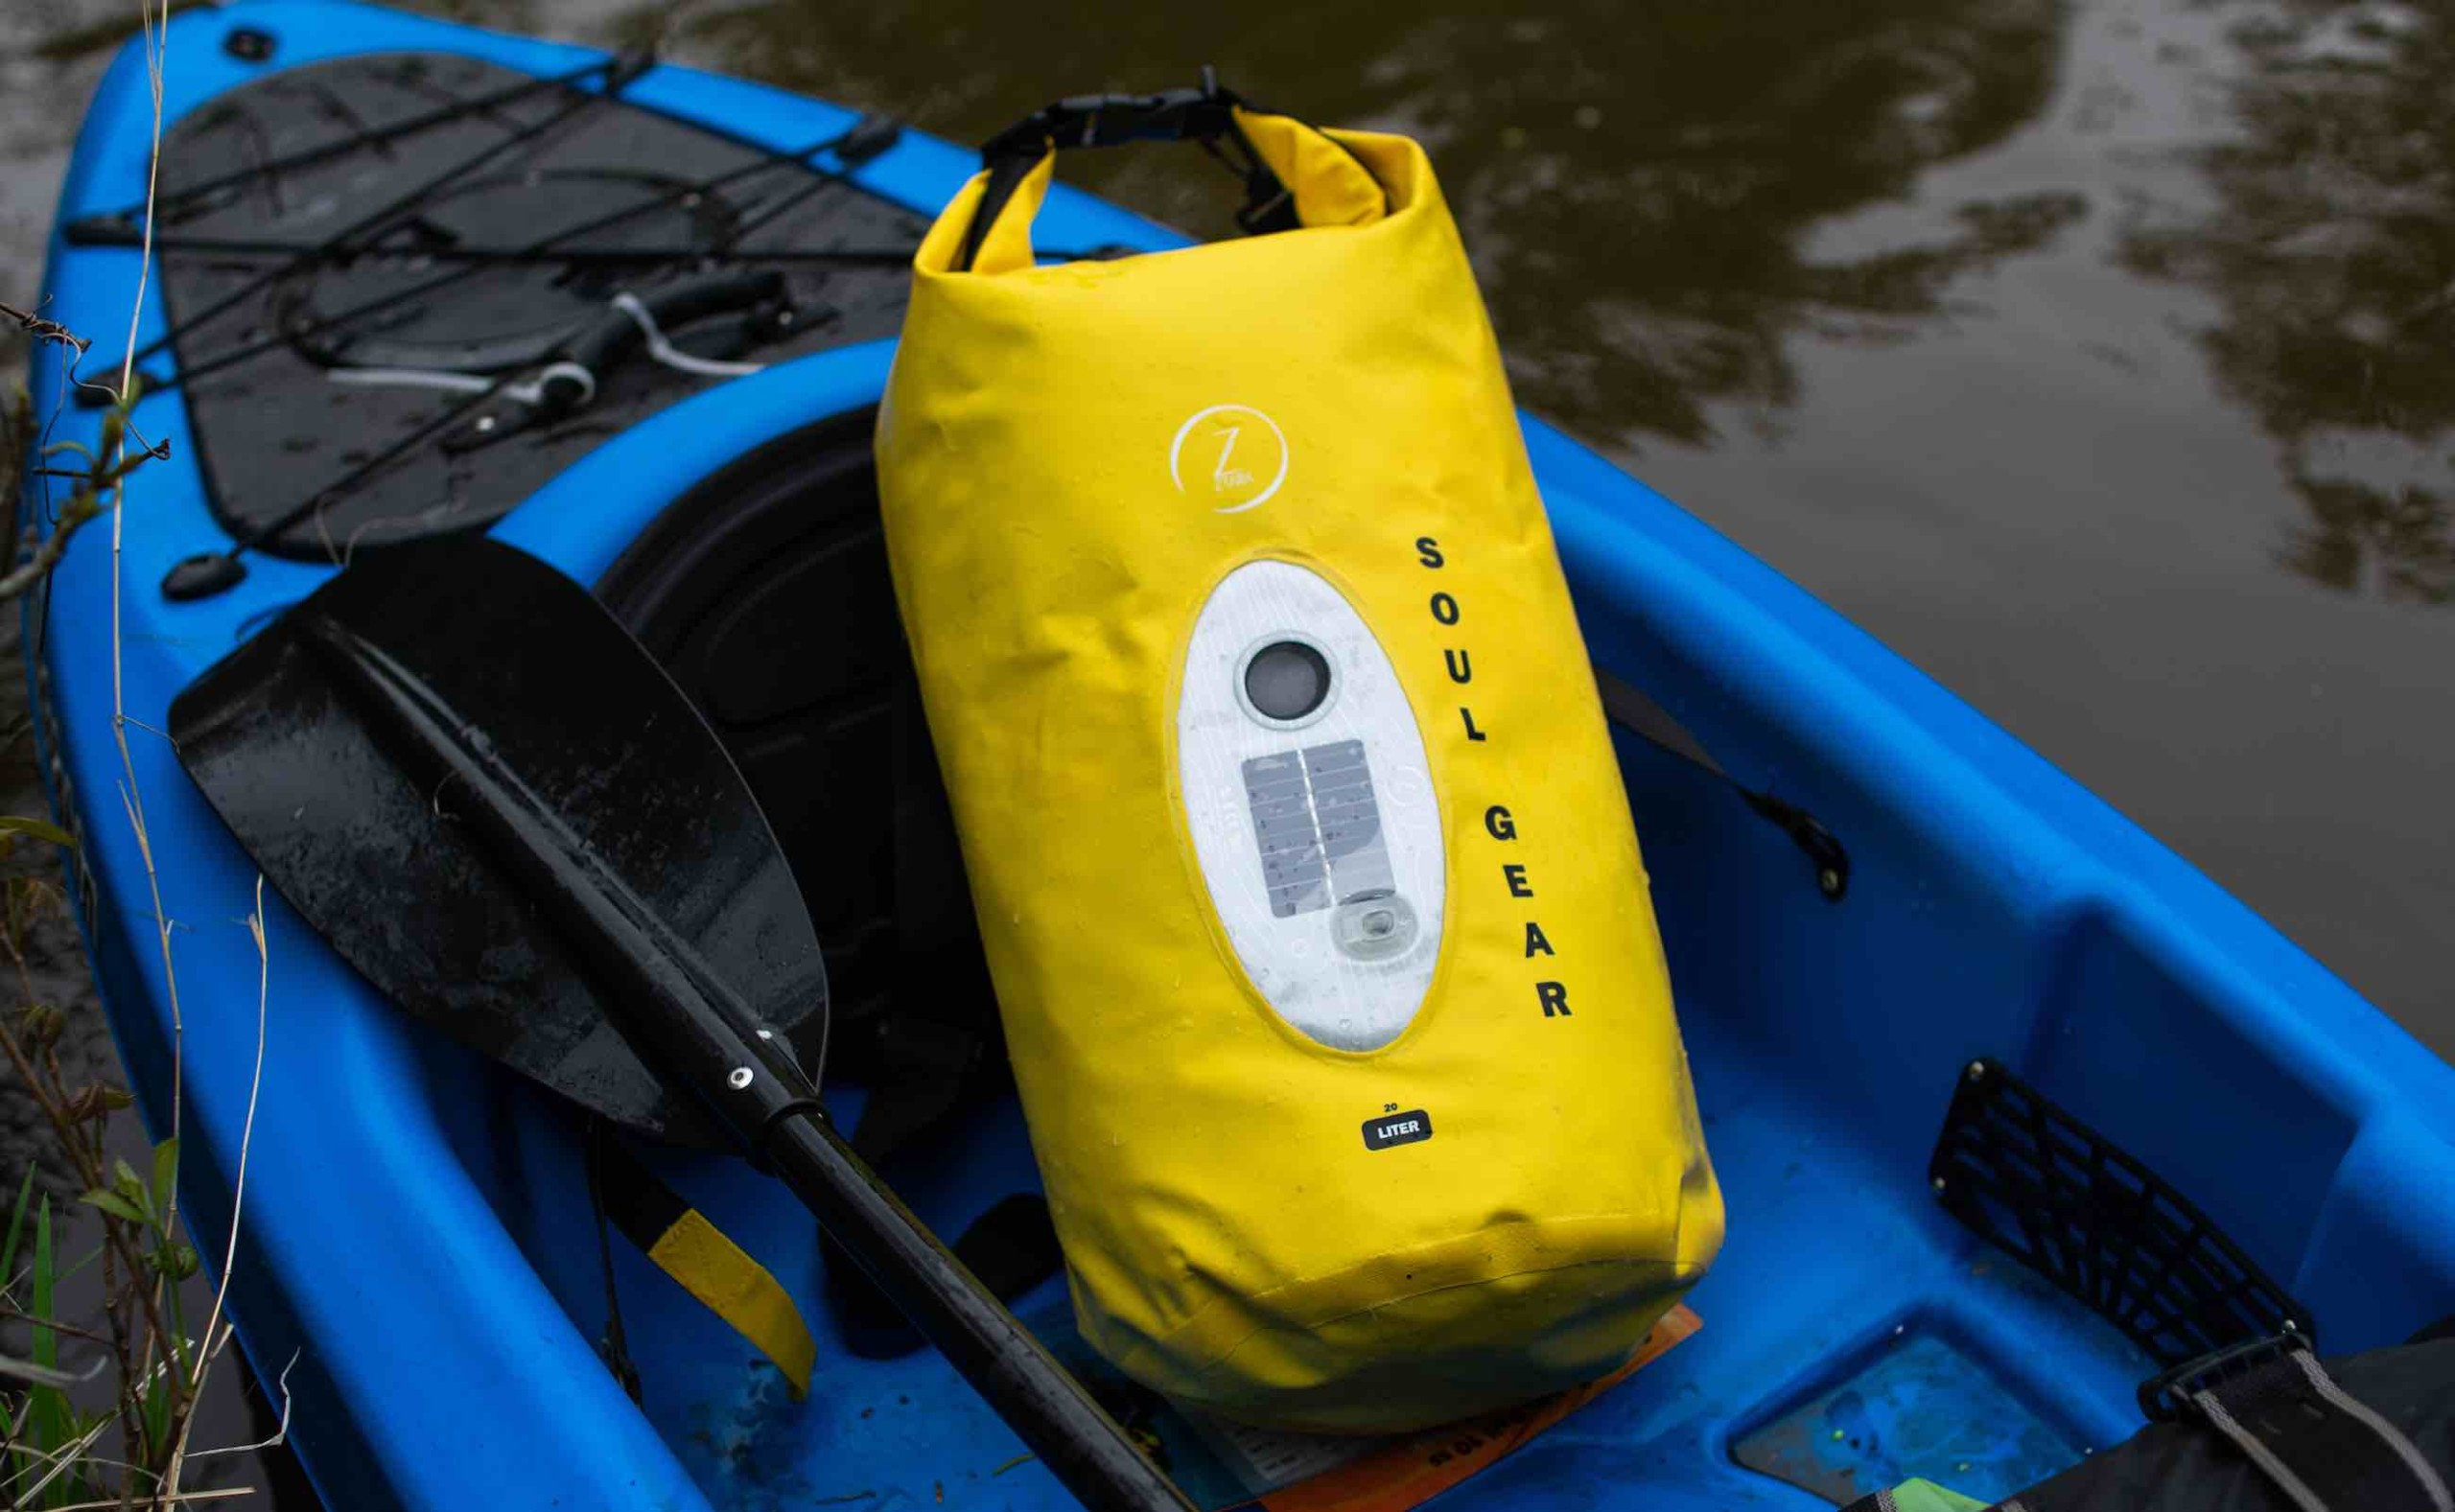 SOUL GEAR Waterproof Dry Bag Speaker combines two must-haves in one